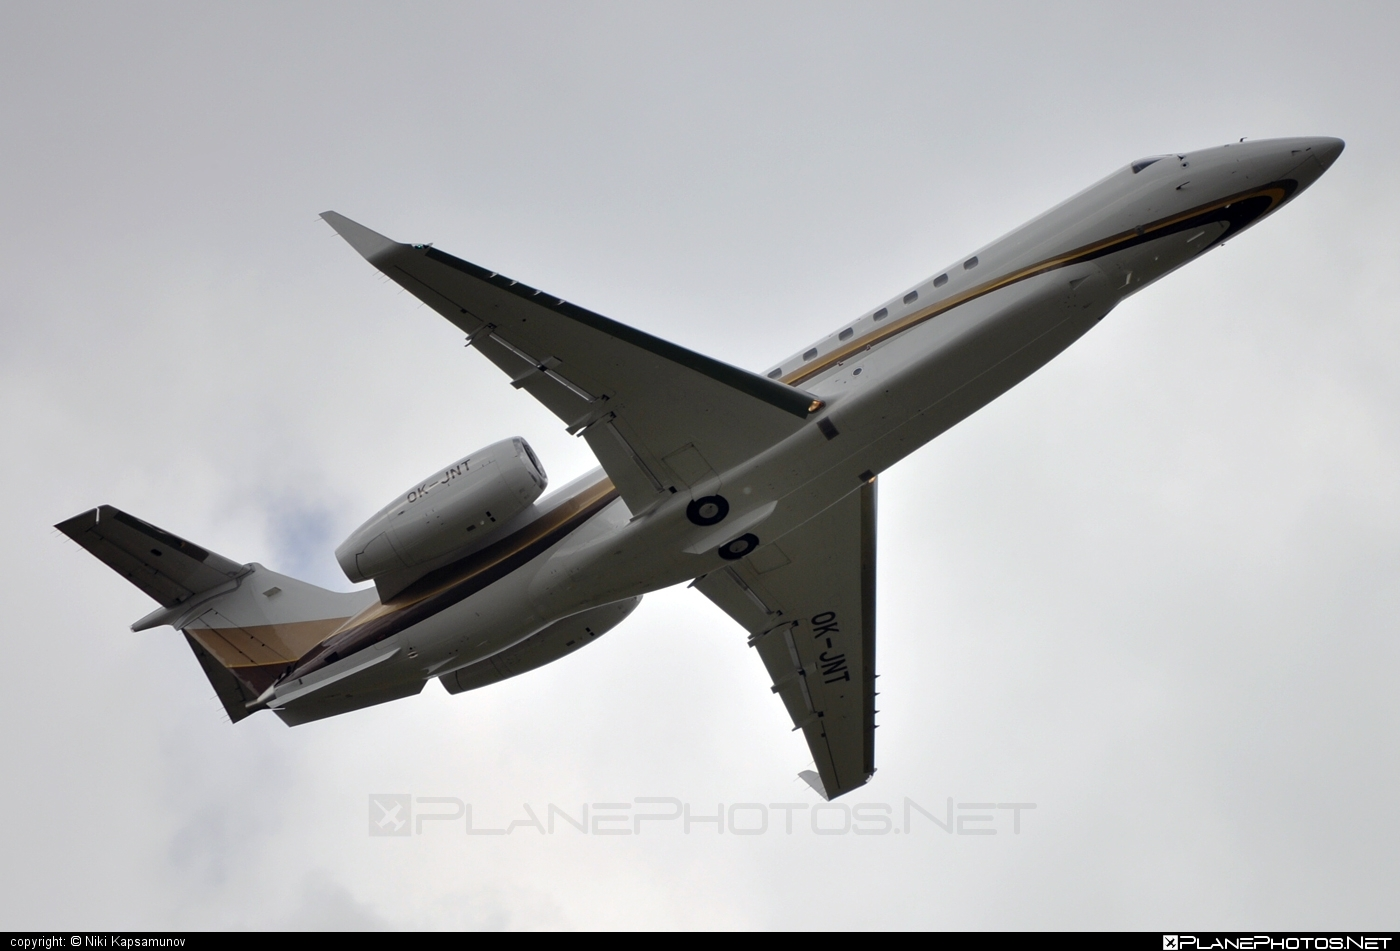 Embraer ERJ-135BJ Legacy - OK-JNT operated by Private operator #embraer #embraer135 #embraerlegacy #erj135 #erj135bj